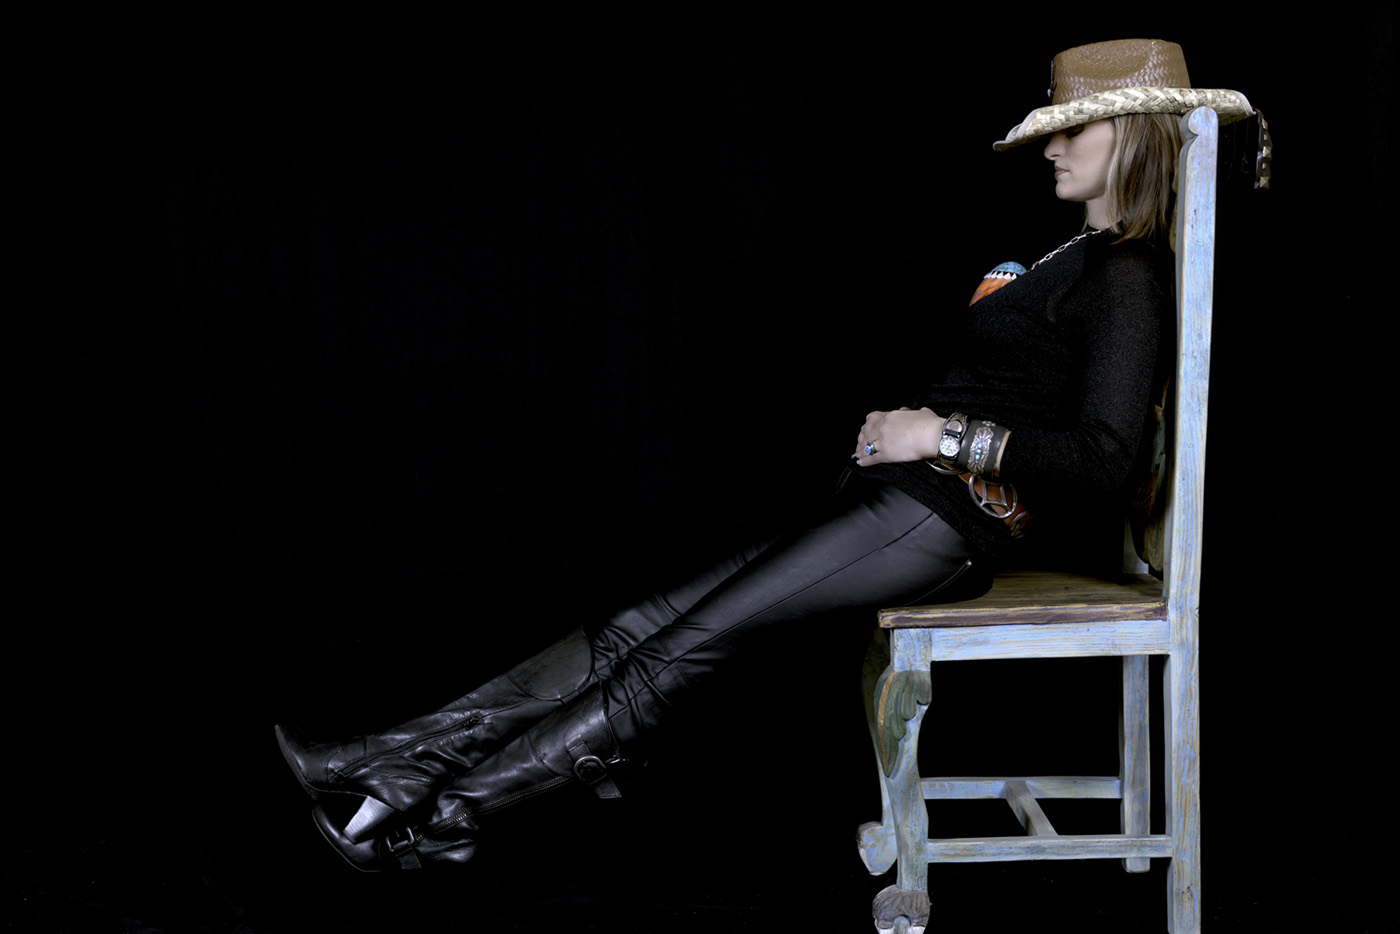 cowgirl-resting-1-web